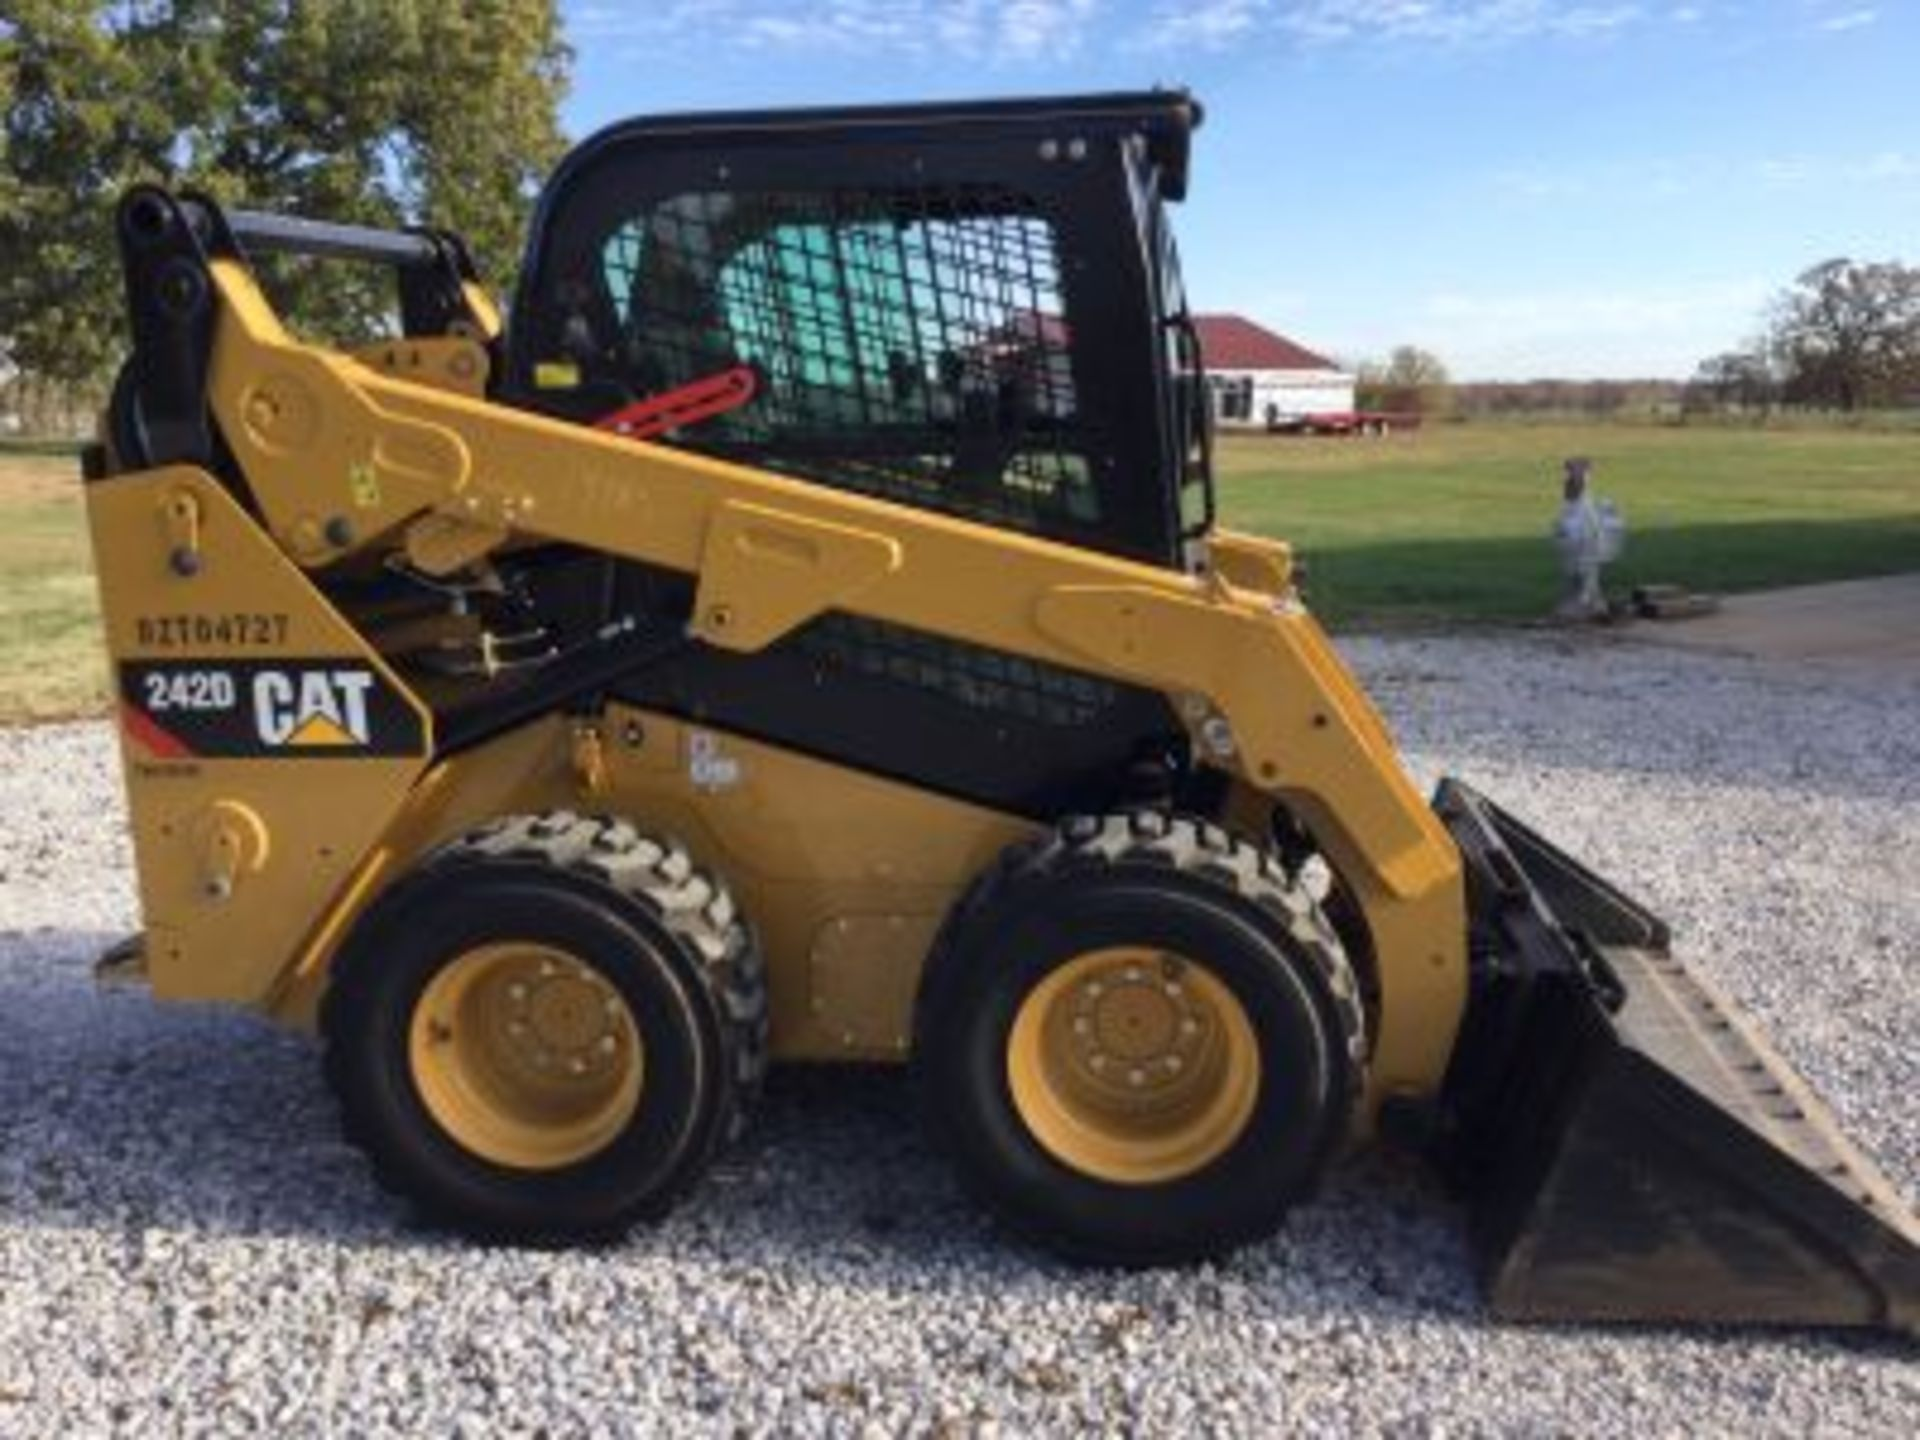 2018 CATERPILLAR 242D SKIDSTEER LOOKS NEW